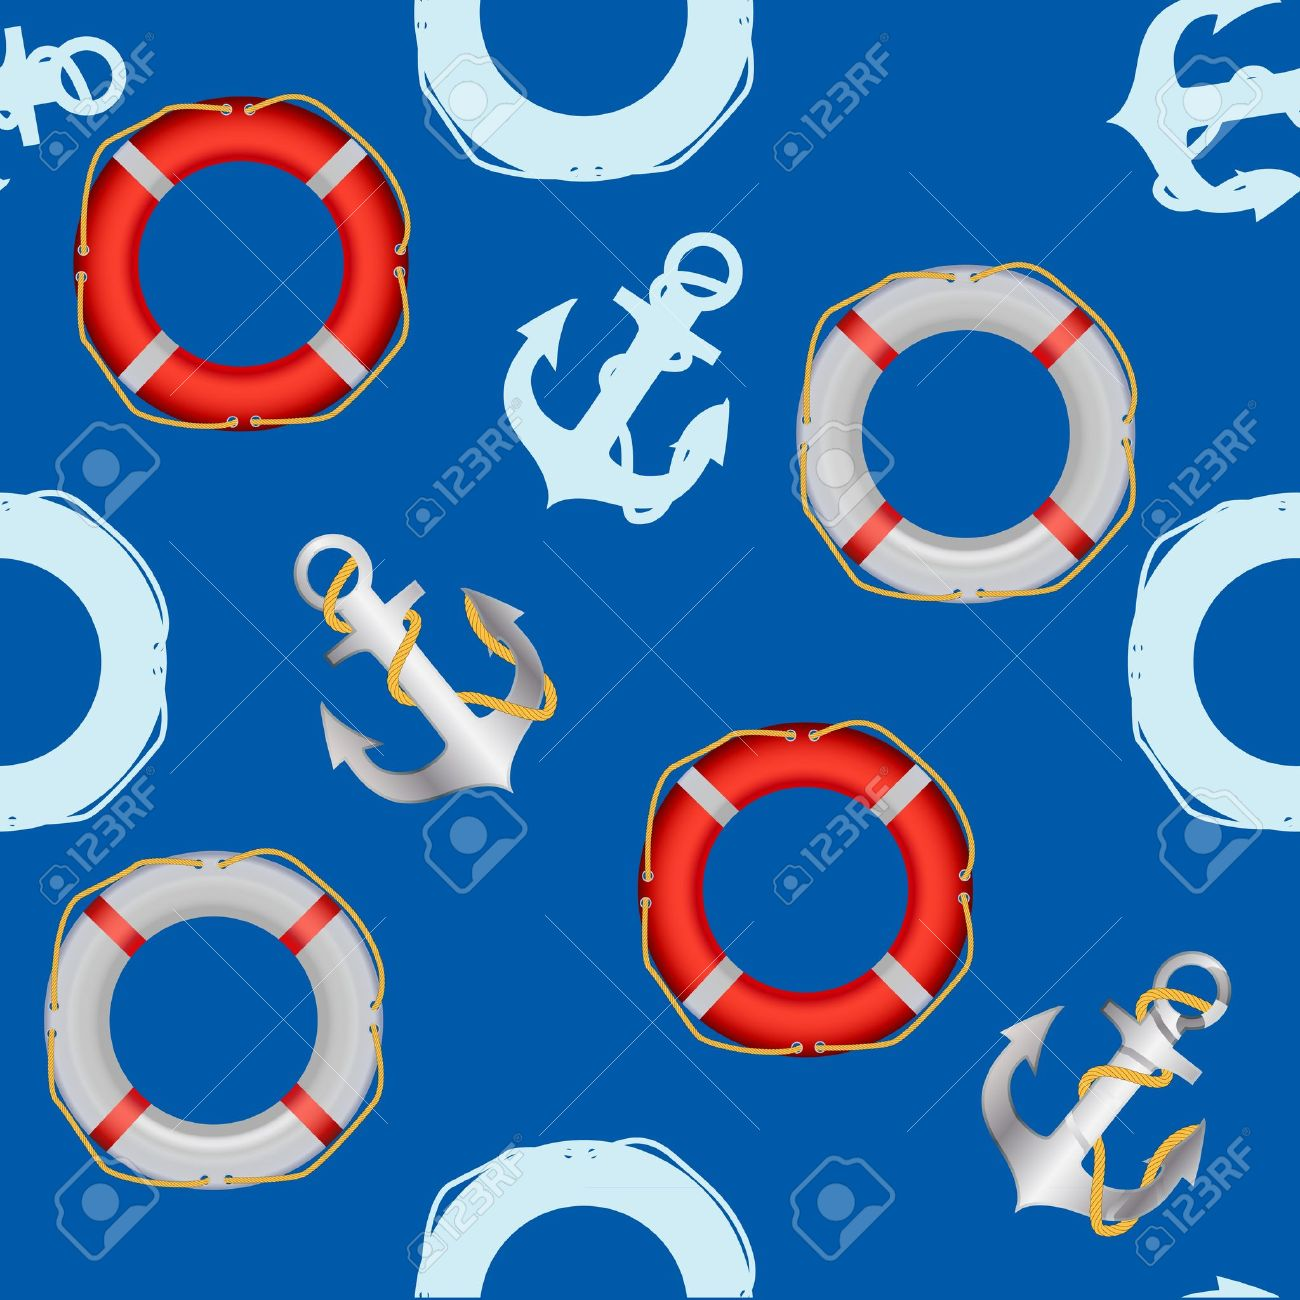 Anchor stencil  and lifebuoy seamless pattern  maritime theme Stock Vector - 13845330